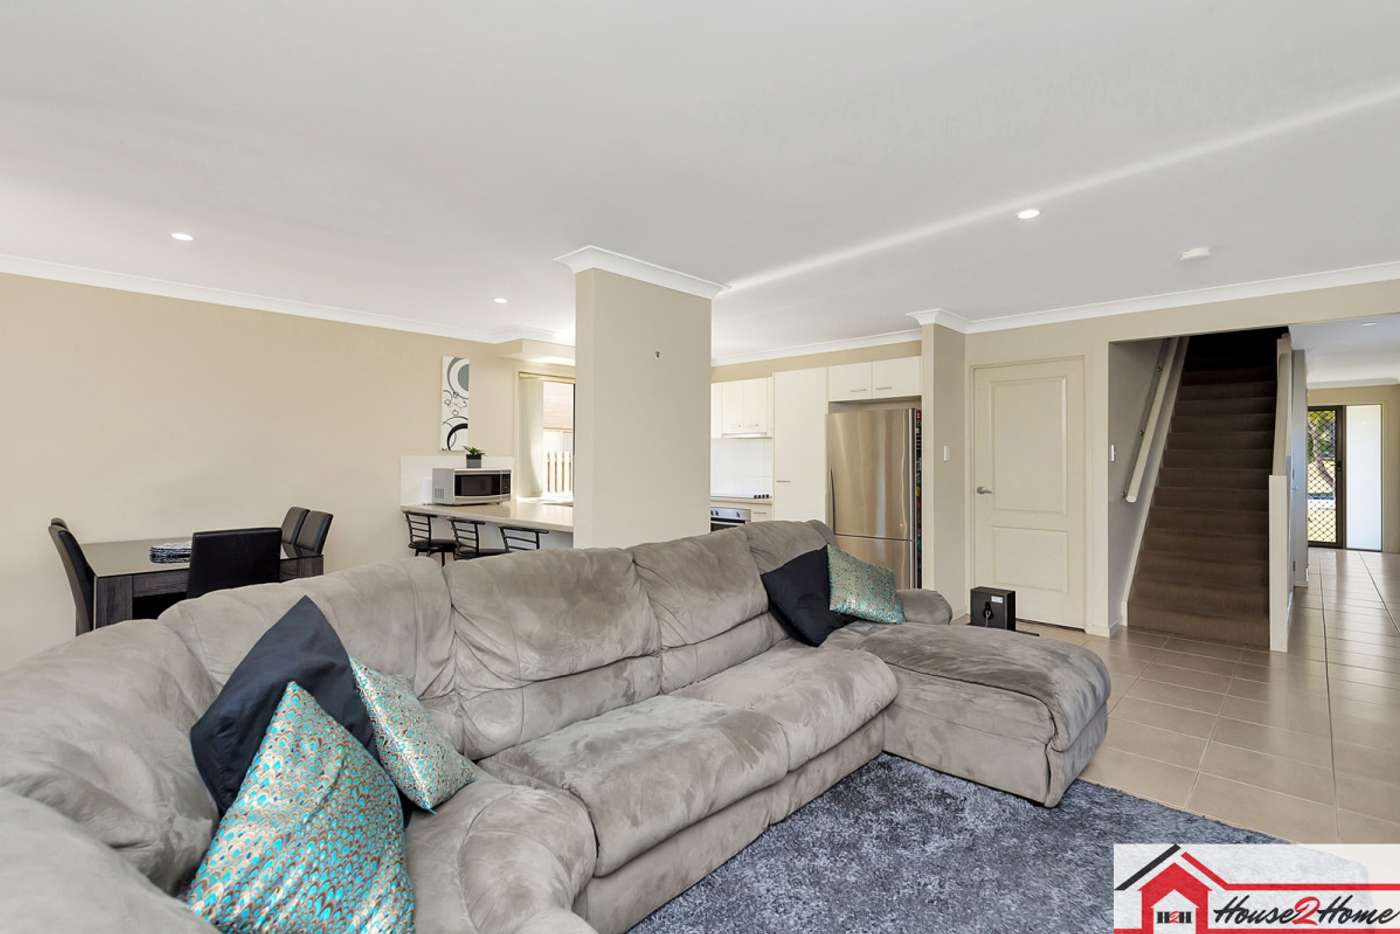 Seventh view of Homely house listing, 30 Copper Parade, Pimpama QLD 4209